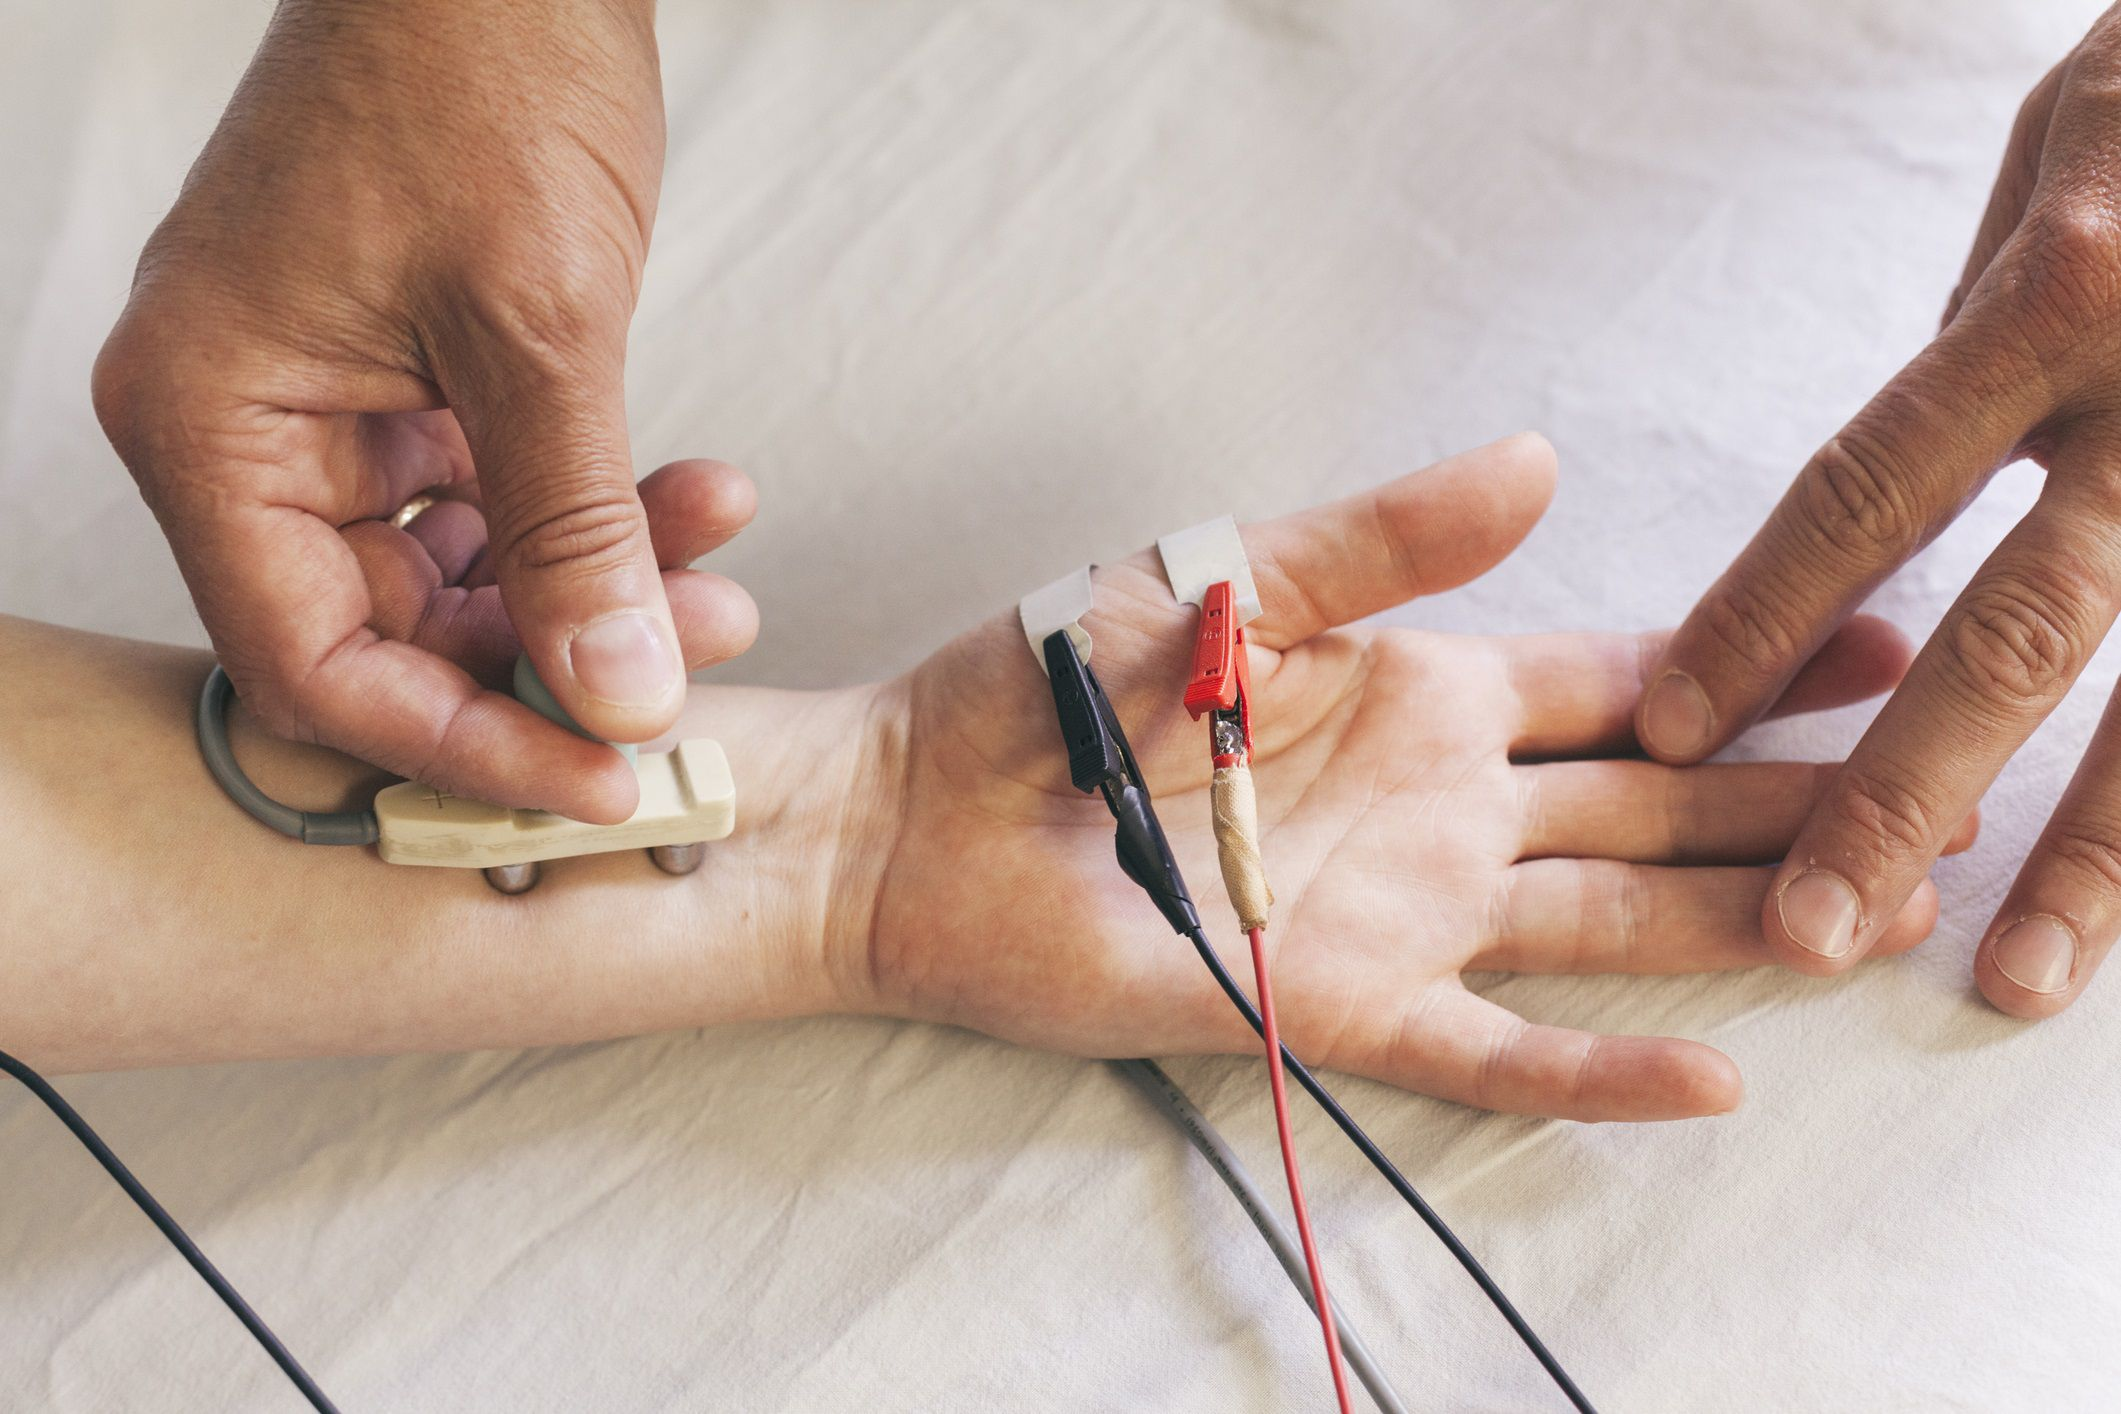 Overview Of The Nerve Conduction Velocity Test. Reviews On Credit Cards Moving To Long Island. Database Service Providers Md Medicare Choice. Grand Paws Animal Clinic Online Acting School. Scott Price Photography Find Employees Online. Application Level Firewall Calculus I Online. Awesome Internal Medicine Board Review. Memorial Hospital Clinic Medical Coder Salary. Nokia Cell Phone Models Data Integration Cloud